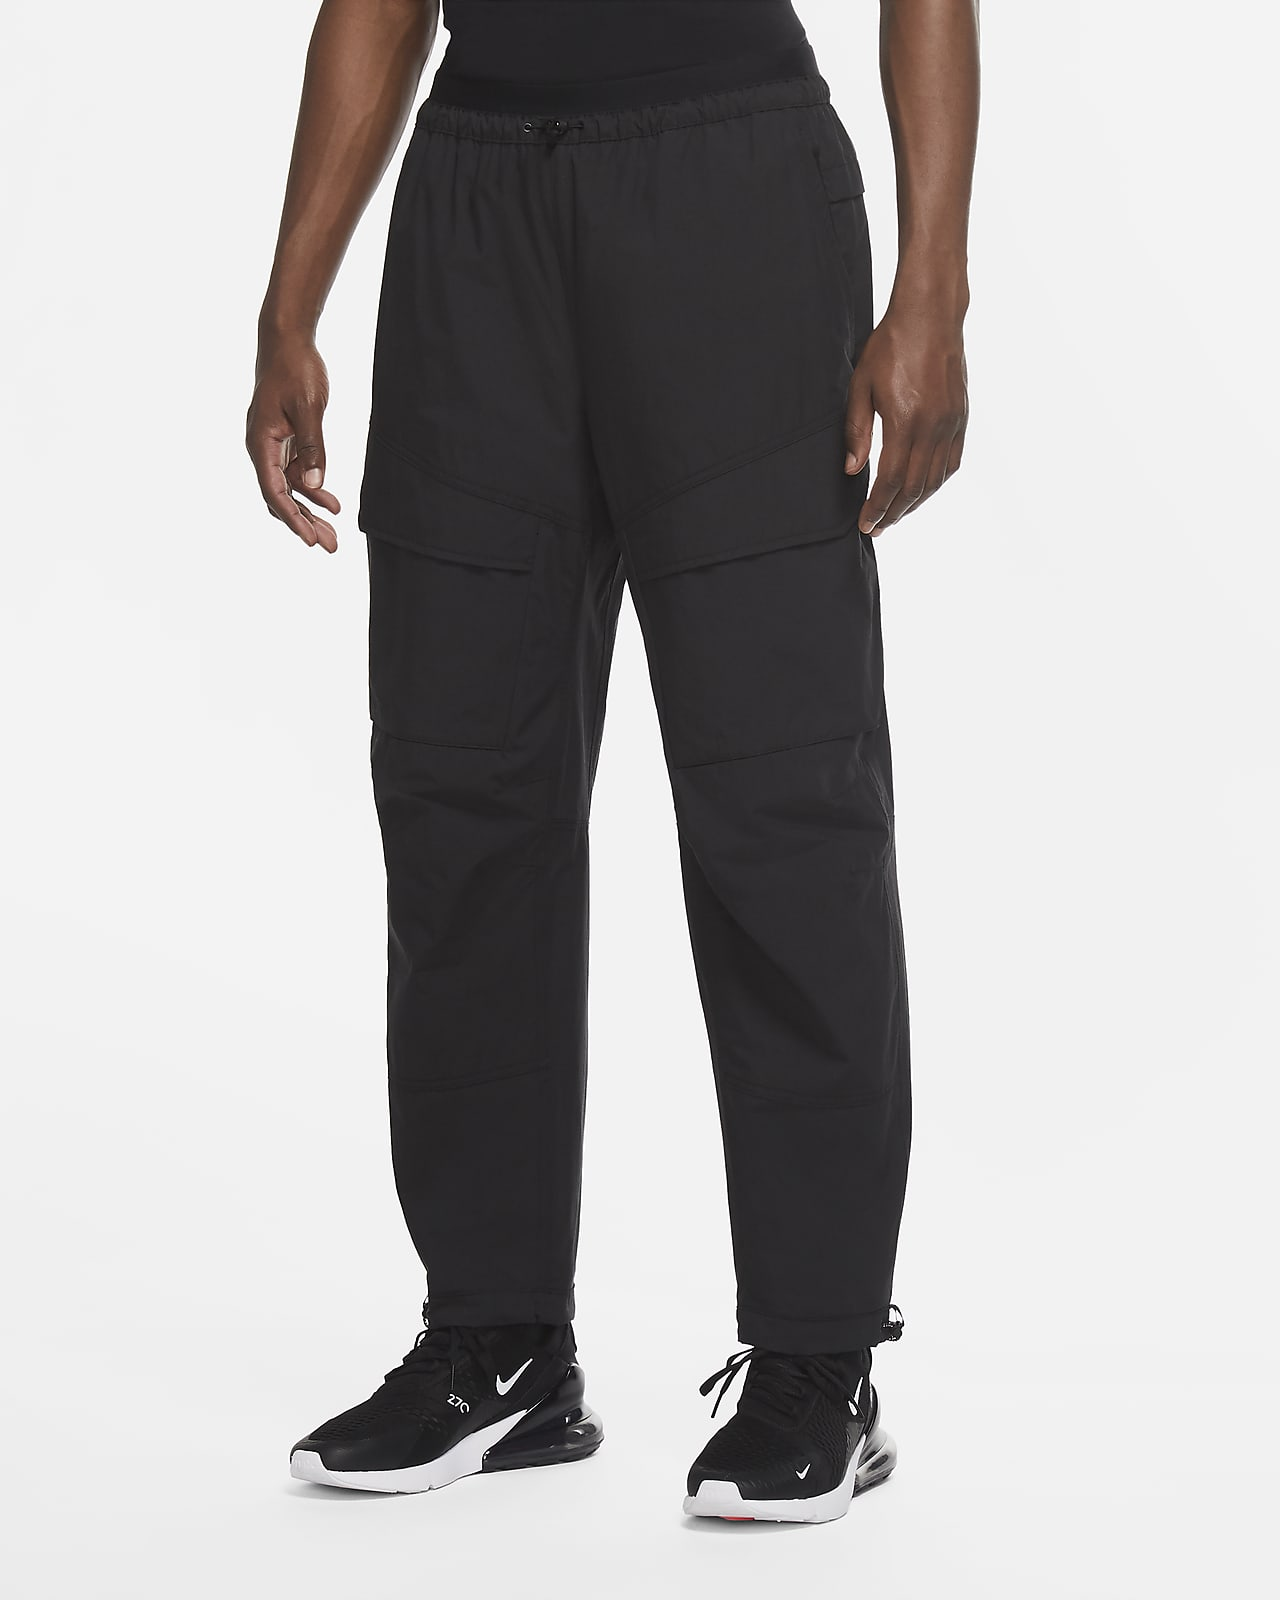 Nike Sportswear Tech Pack Men's Woven Trousers